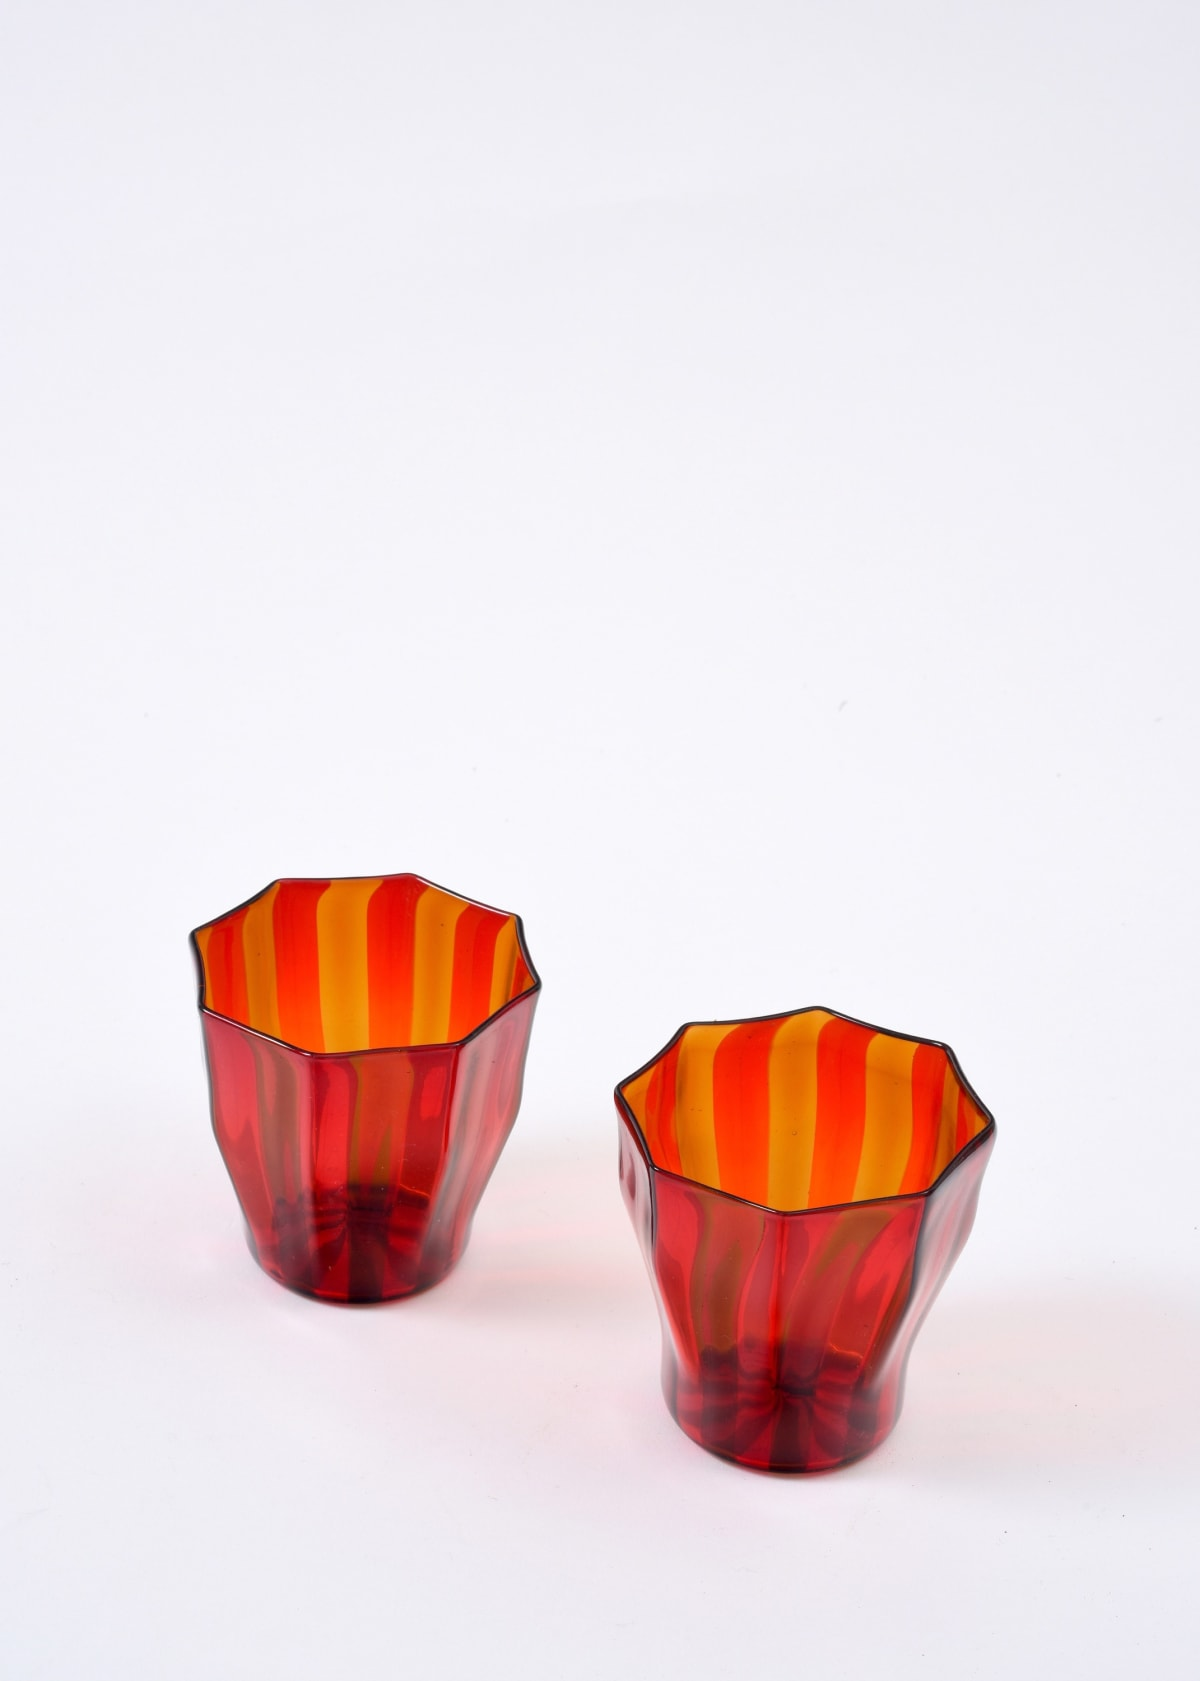 Campbell-Rey Red and amber 'Rosanna' Murano tumbler Coloured Murano glass Height 8 cm Available in red and amber, red and blue, amber and turquoise, green and blue, green and turquoise. Made to order, lead time 4-6 weeks